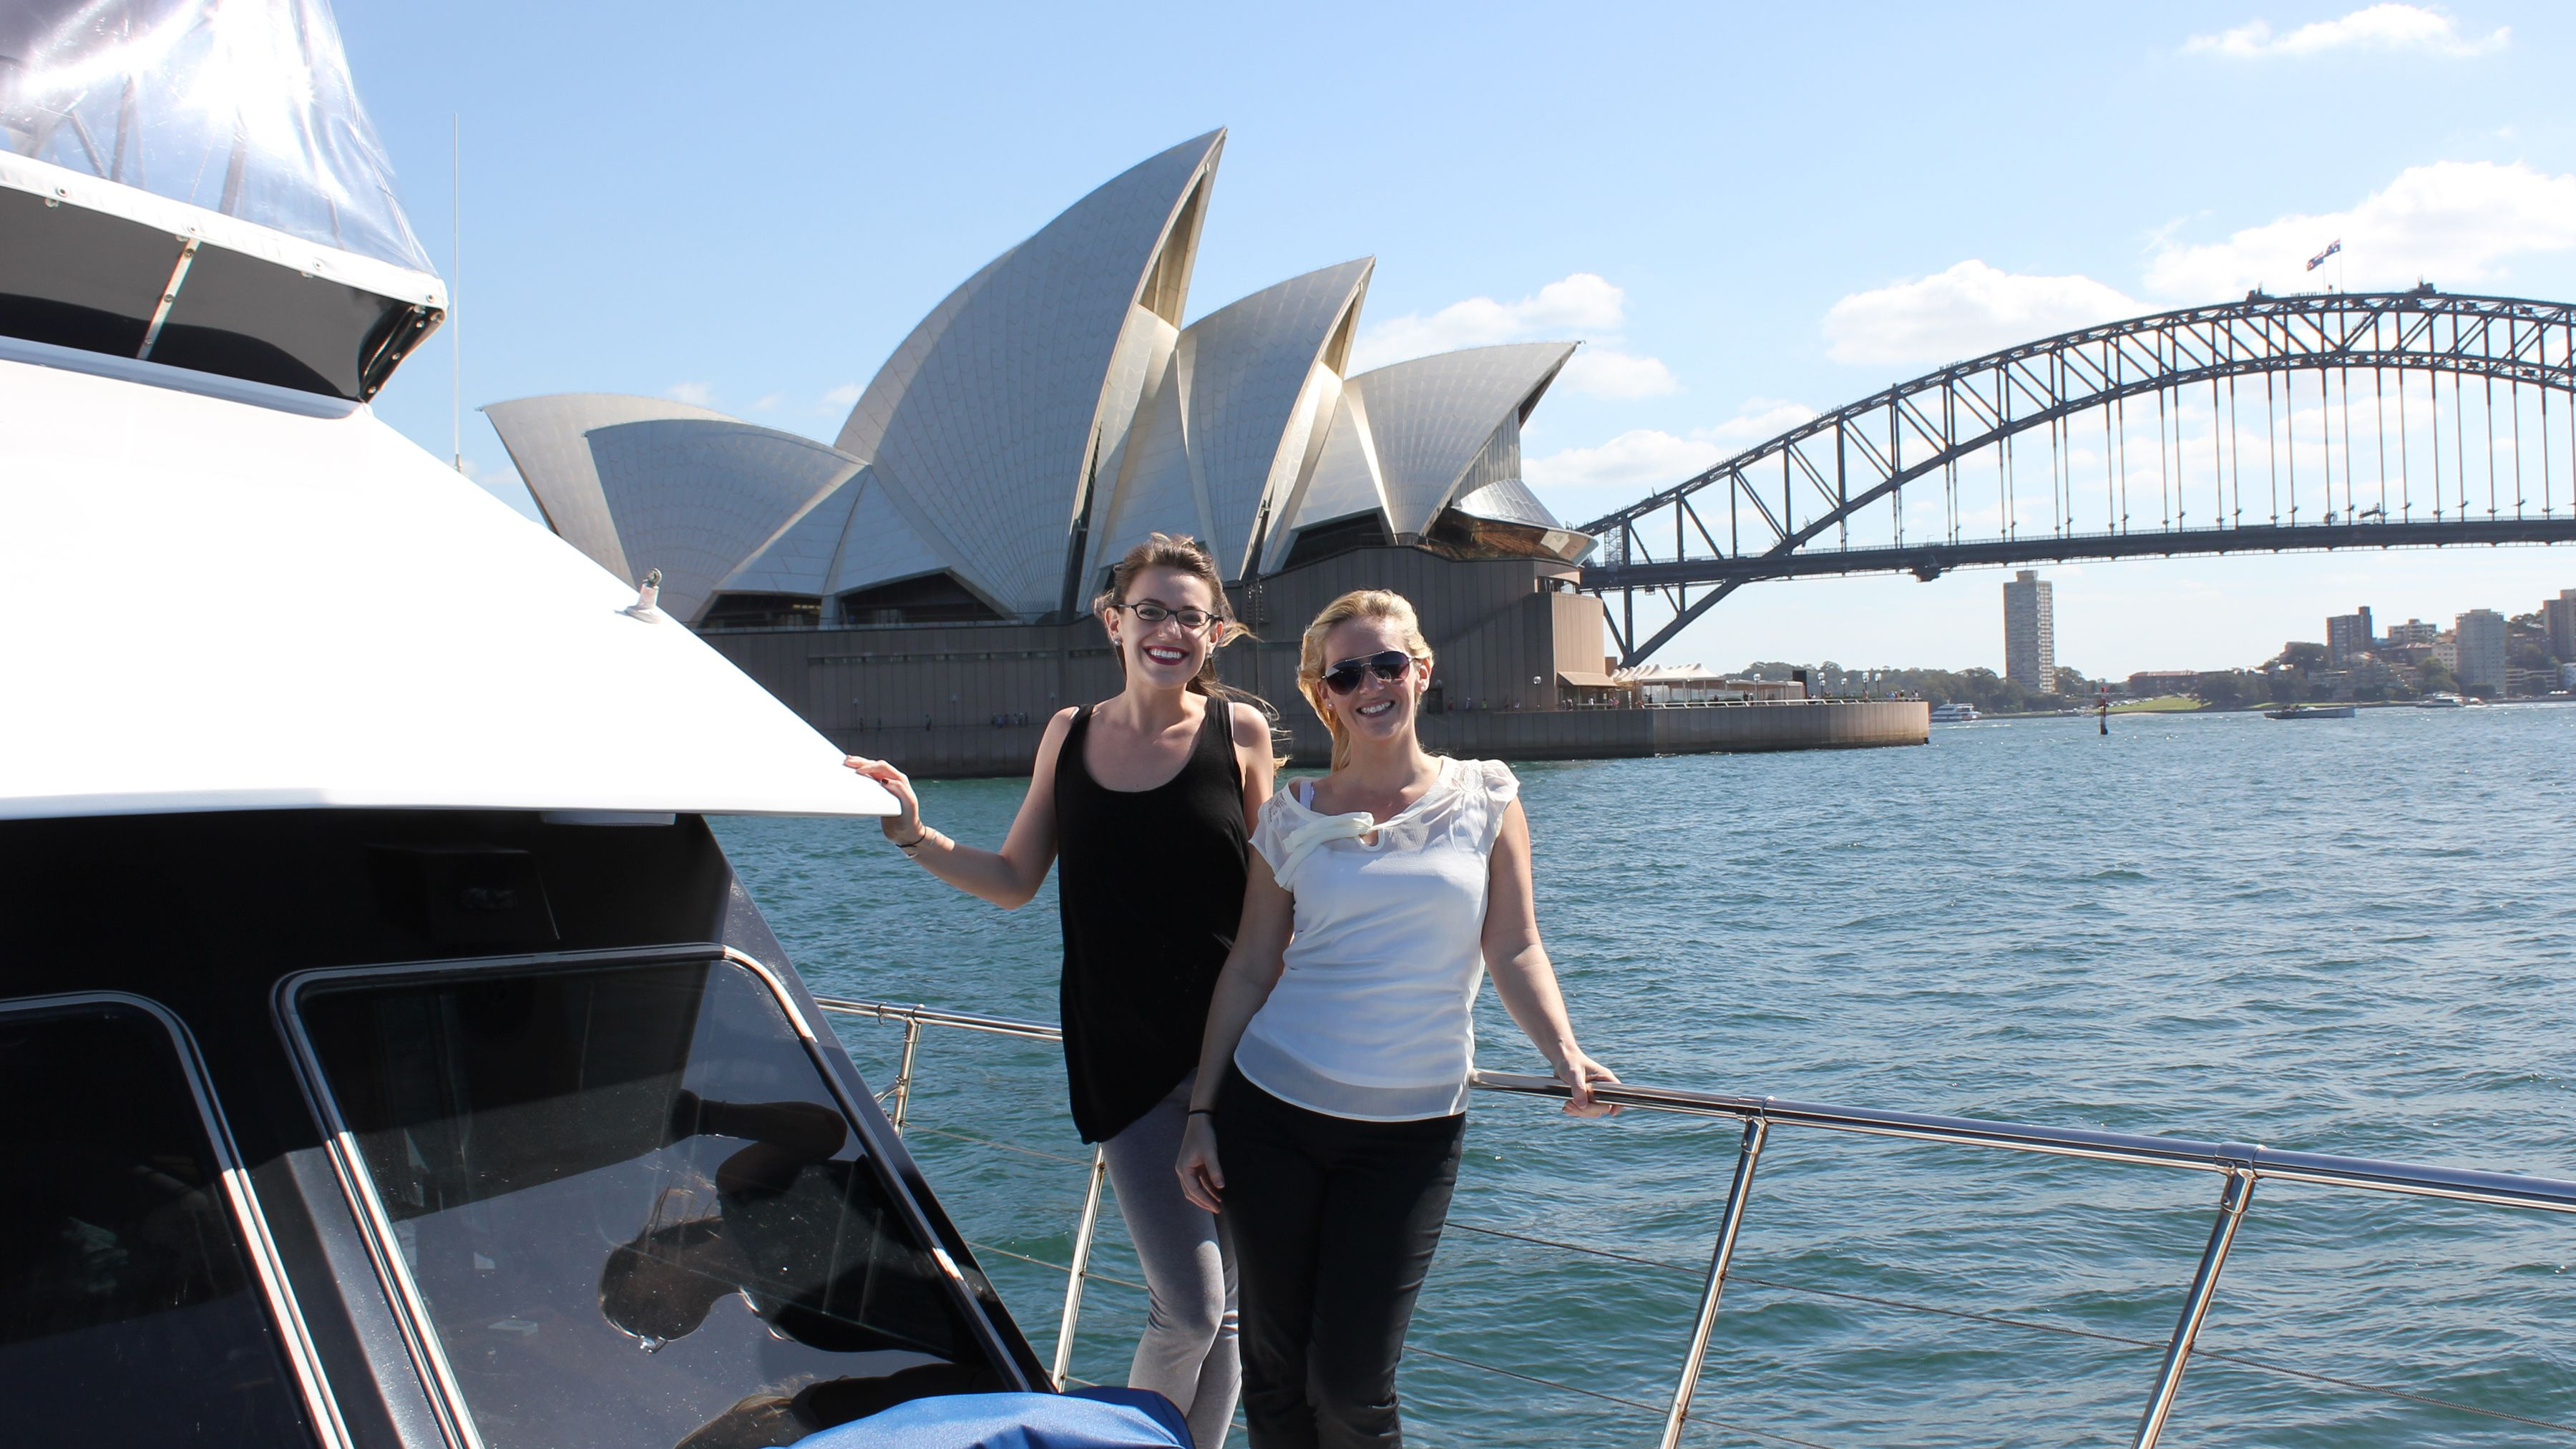 Two women pose on a yacht in Sydney harbor